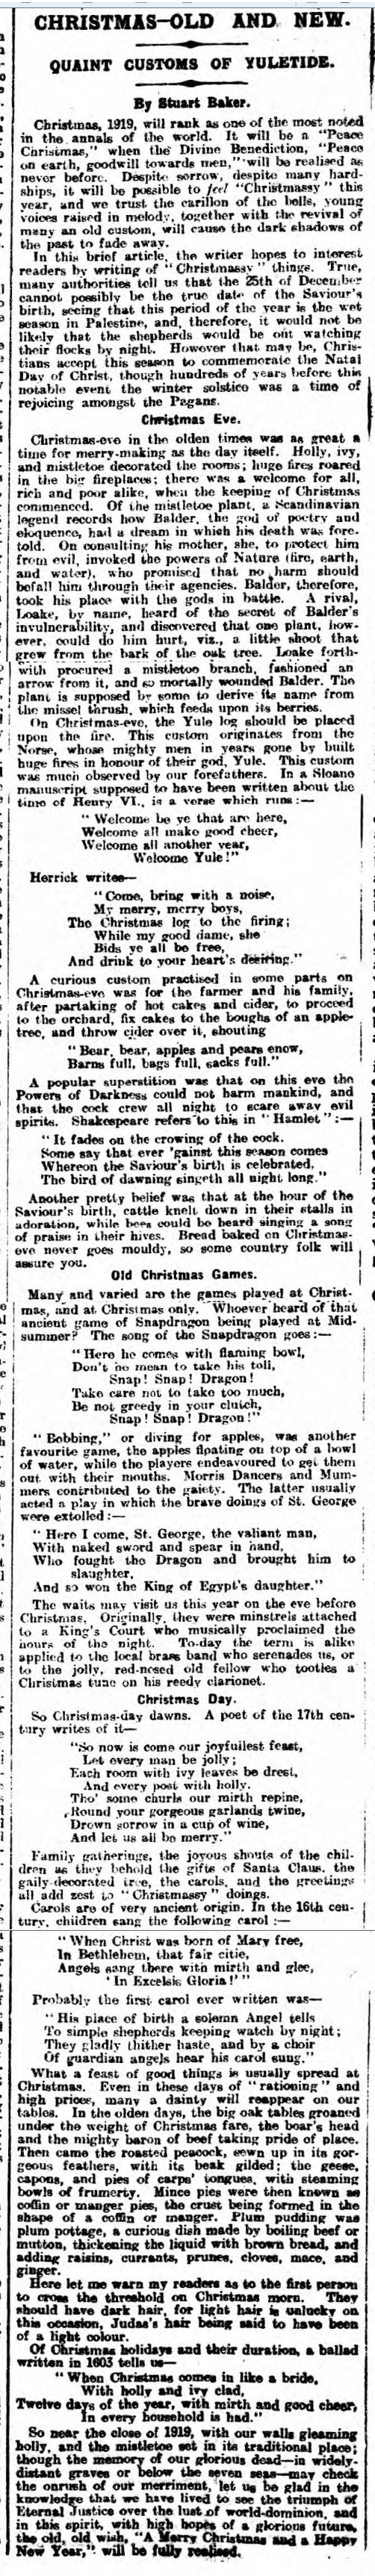 historical newspaper report on christmas